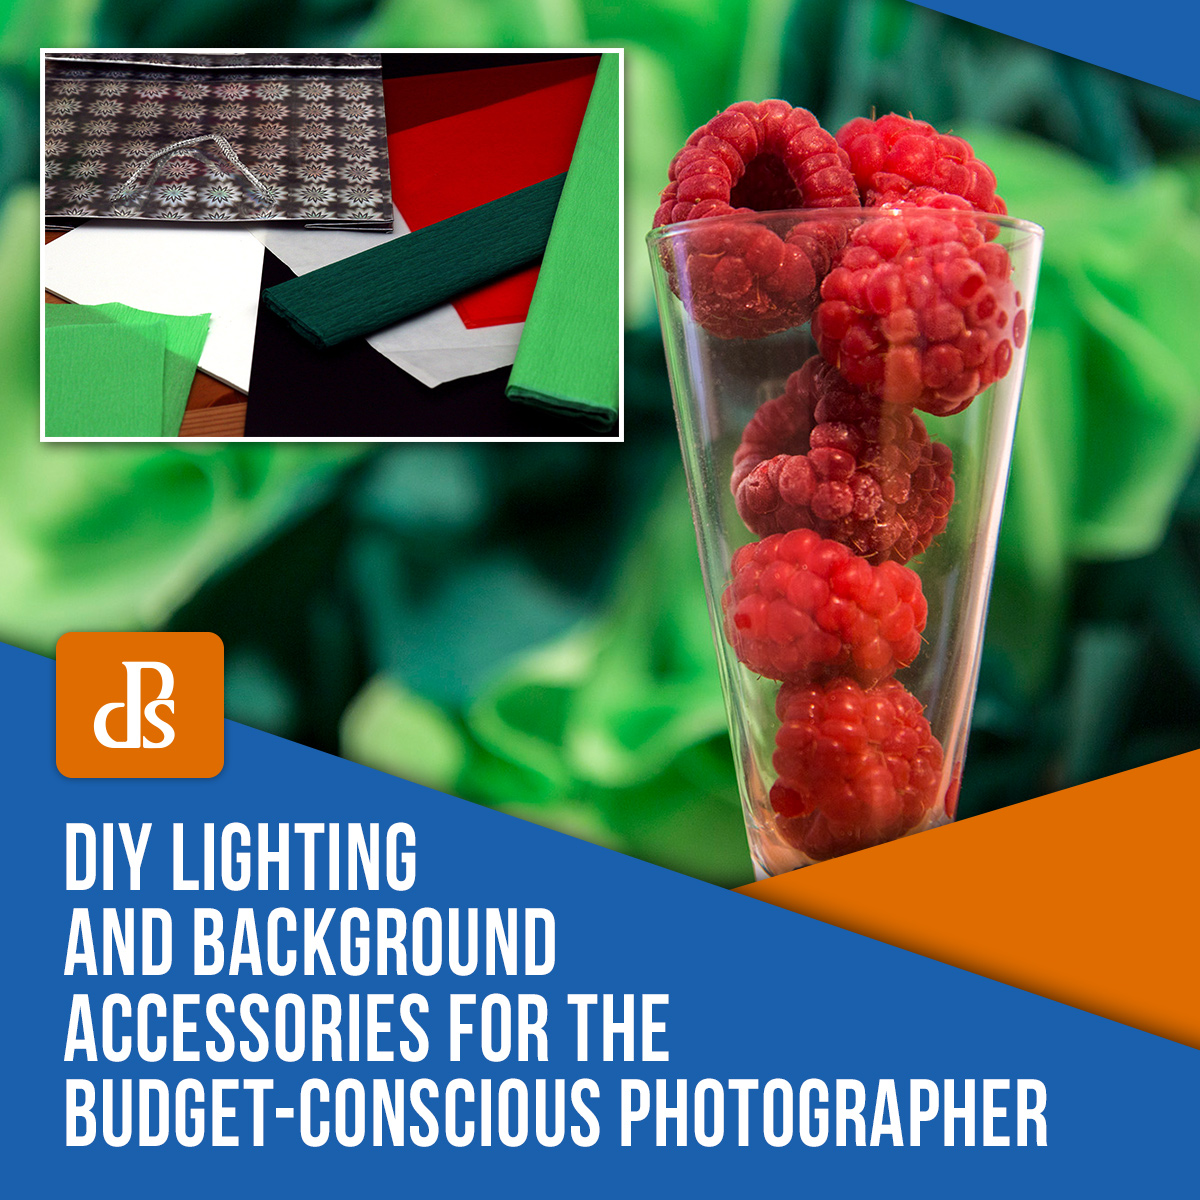 DIY Lighting and Background Accessories for the Budget-Conscious Photographer